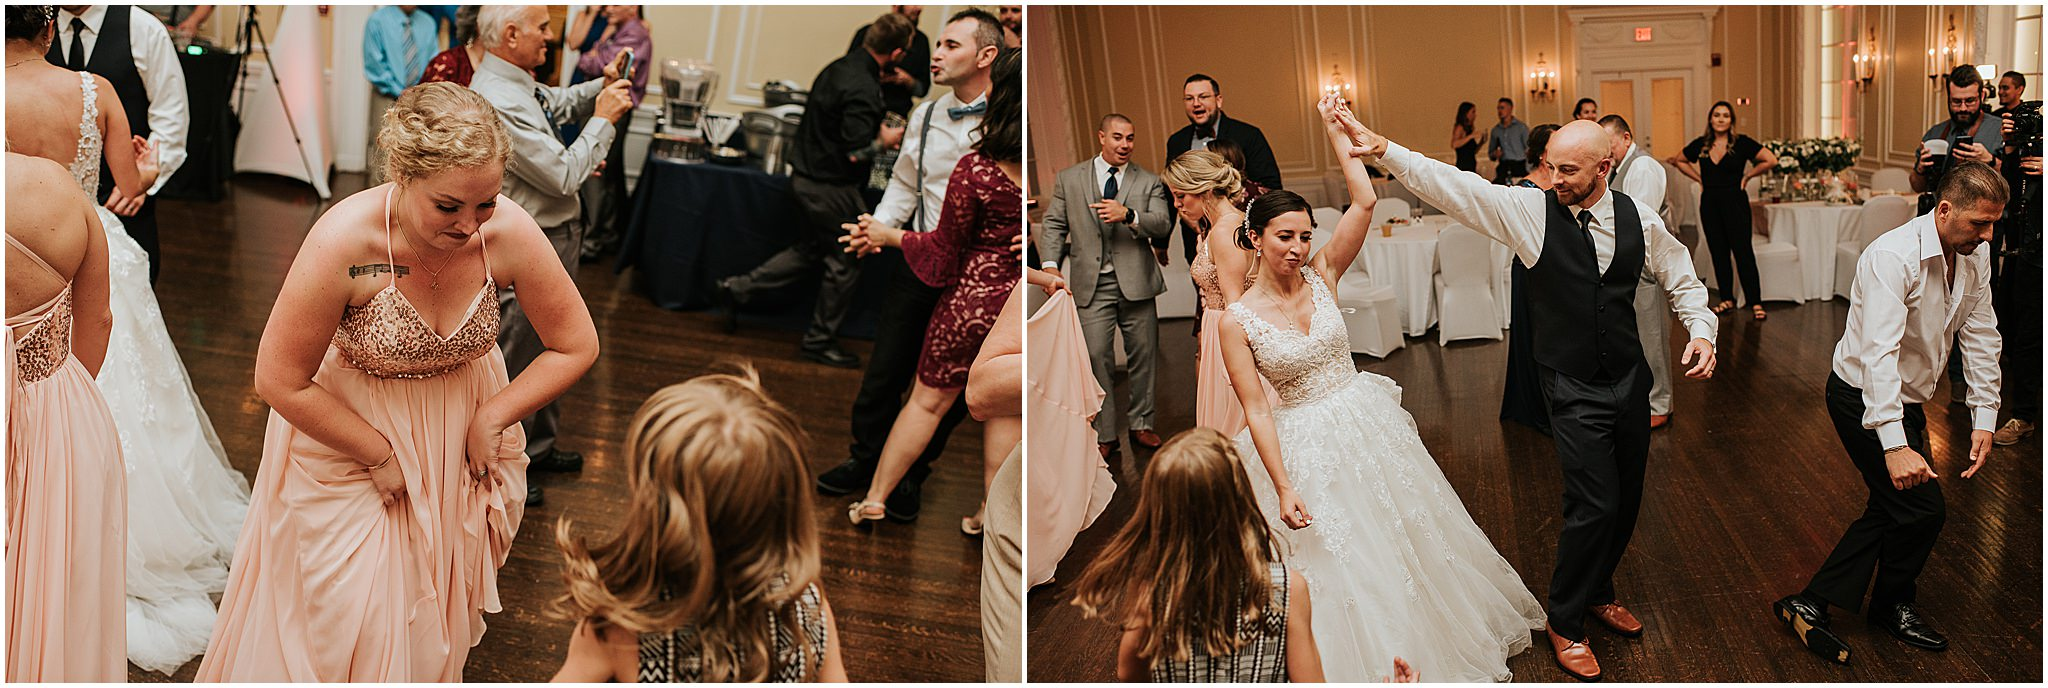 the patrick henry hotel,Roanoke Wedding Photographer,Wedding Photographer,Wedding, Maria & Brandon The Patrick Henry Ballroom Roanoke VA